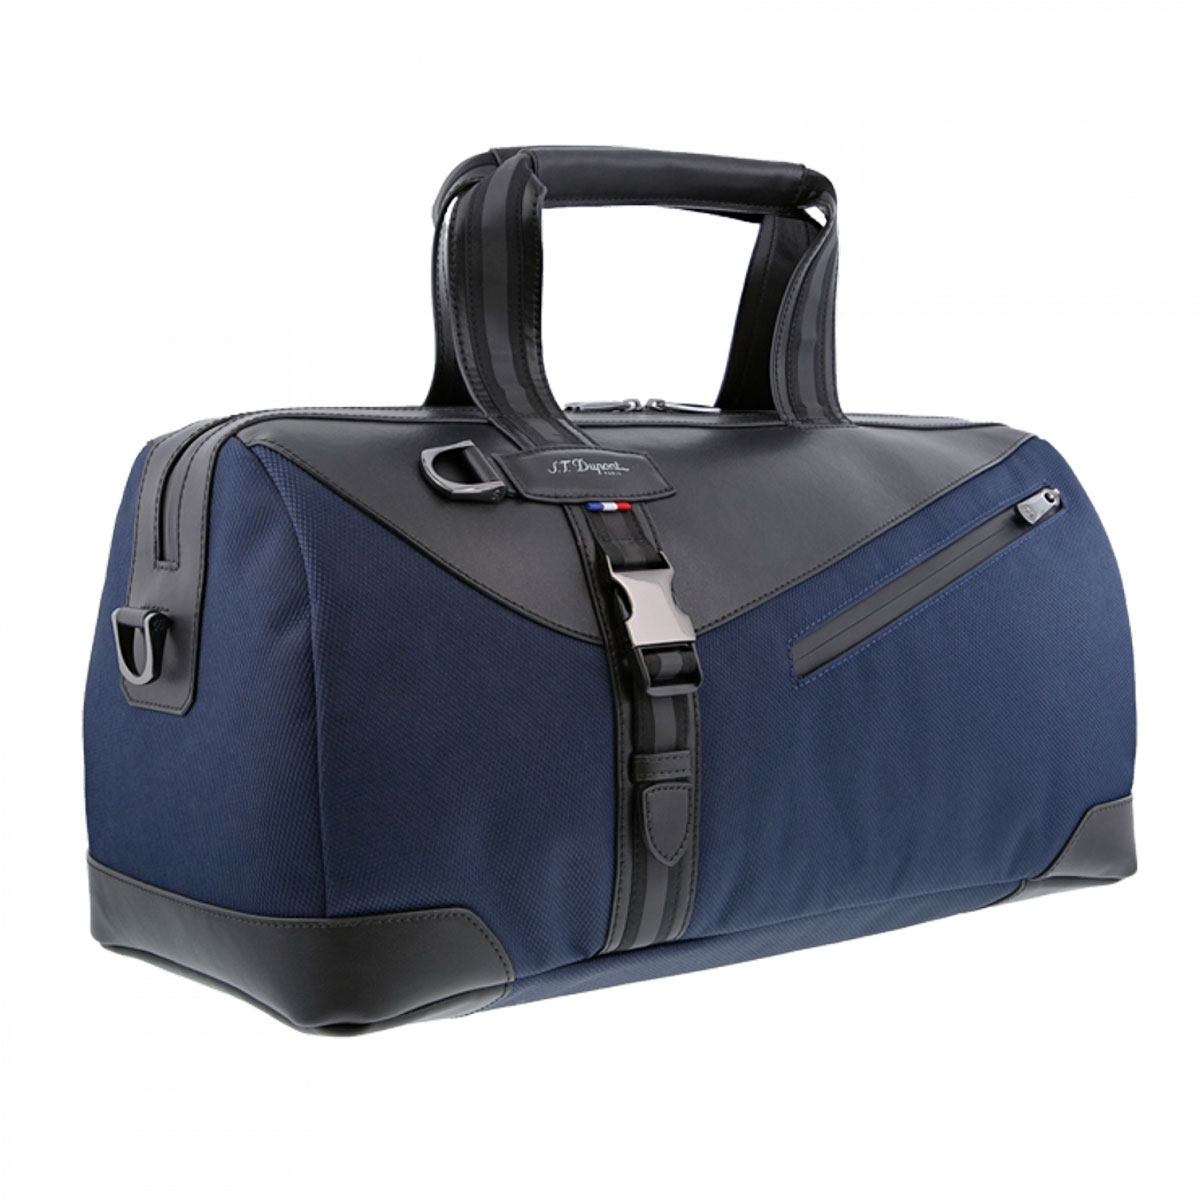 ST Dupont Defi Millenium Cosy Small Travel  Bag